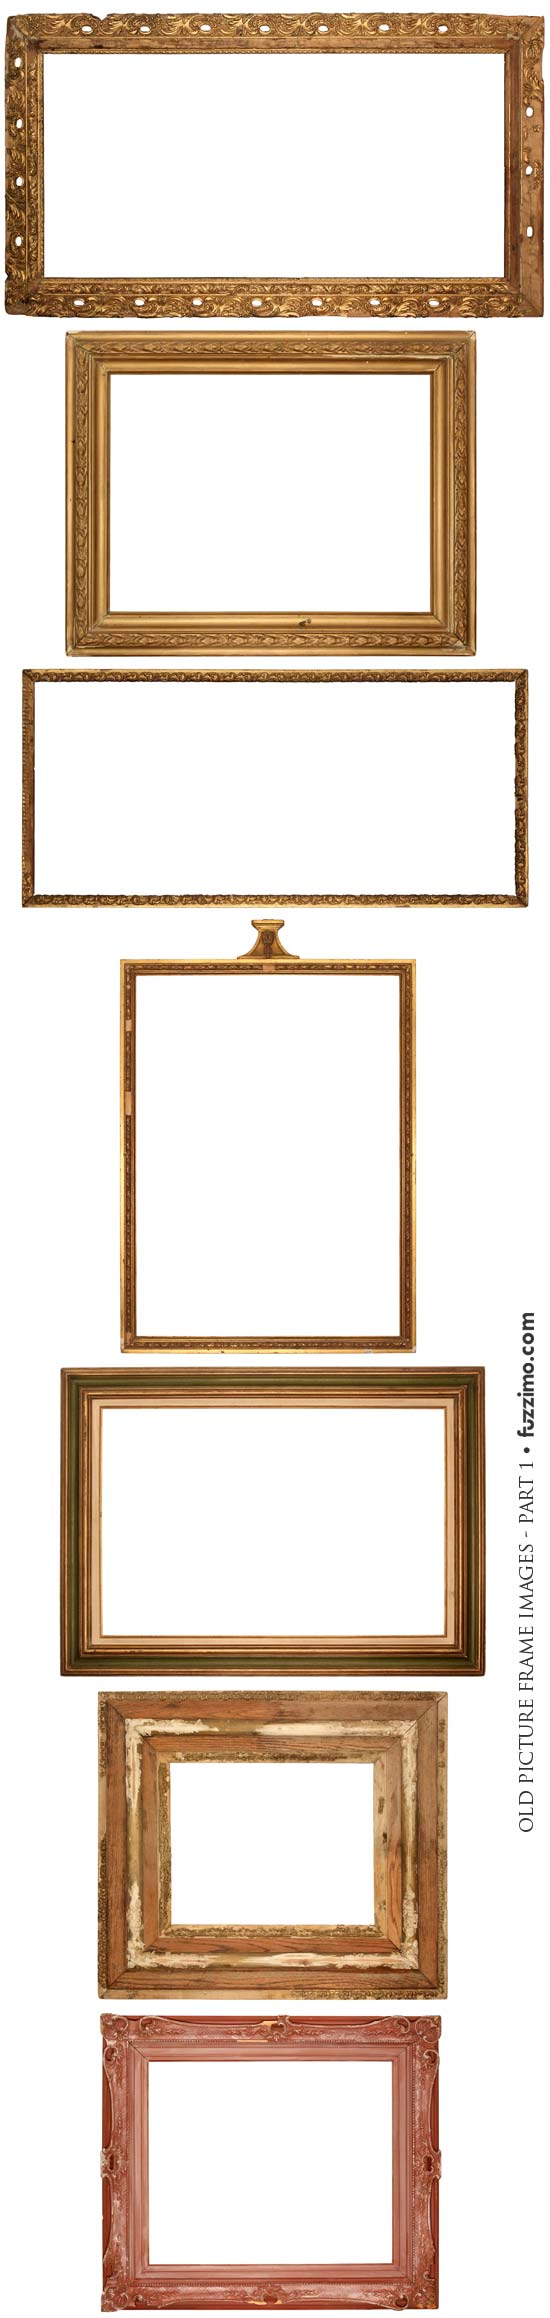 fzm-Antique-Old-Picture-Frame-Images-(1)-02a